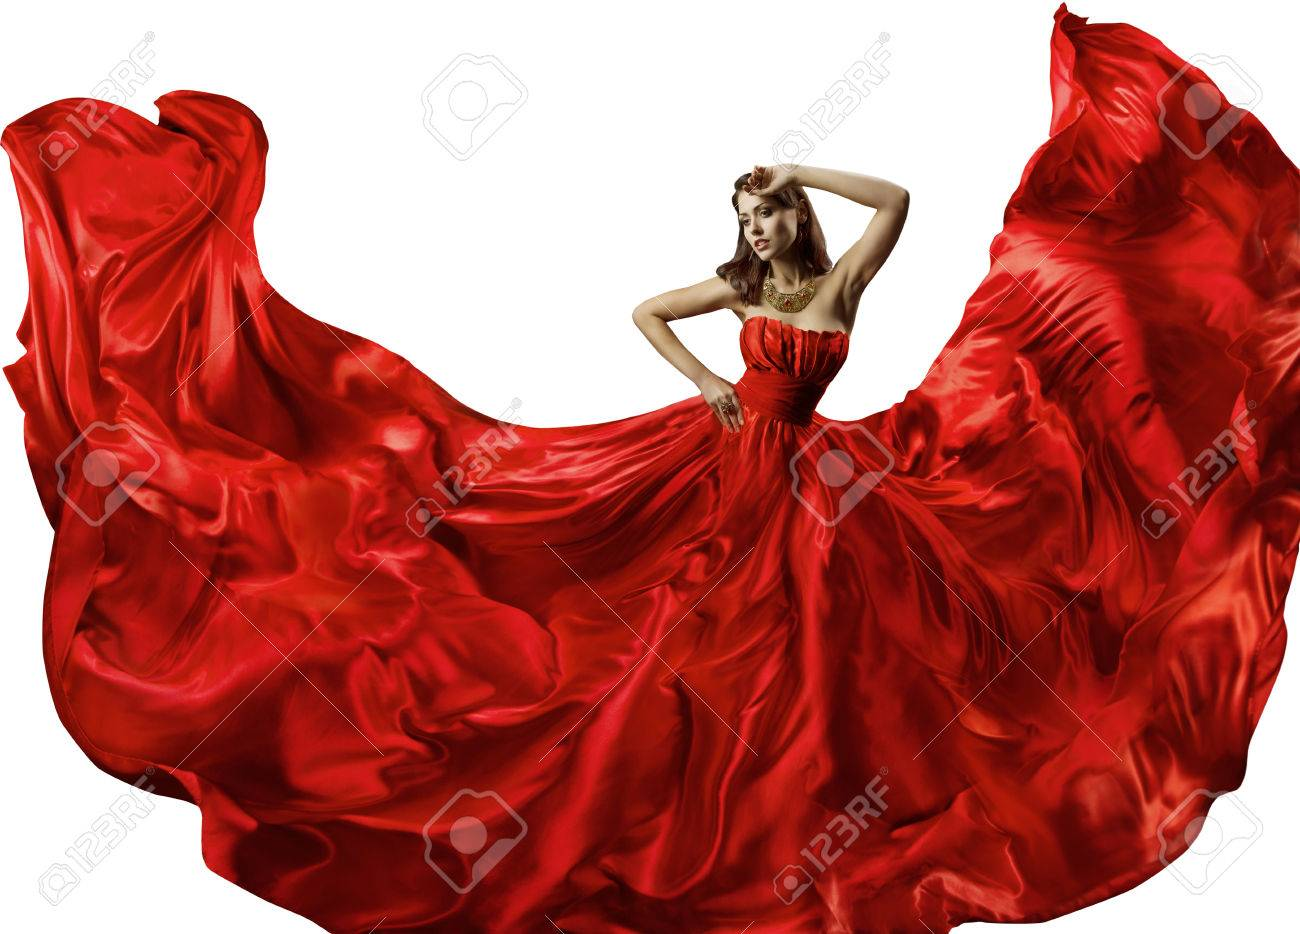 9d23958c4fdd Dancing Woman in Red Dress, Fashion Model Dance in Silk Ball Gown, Waving  Flowing